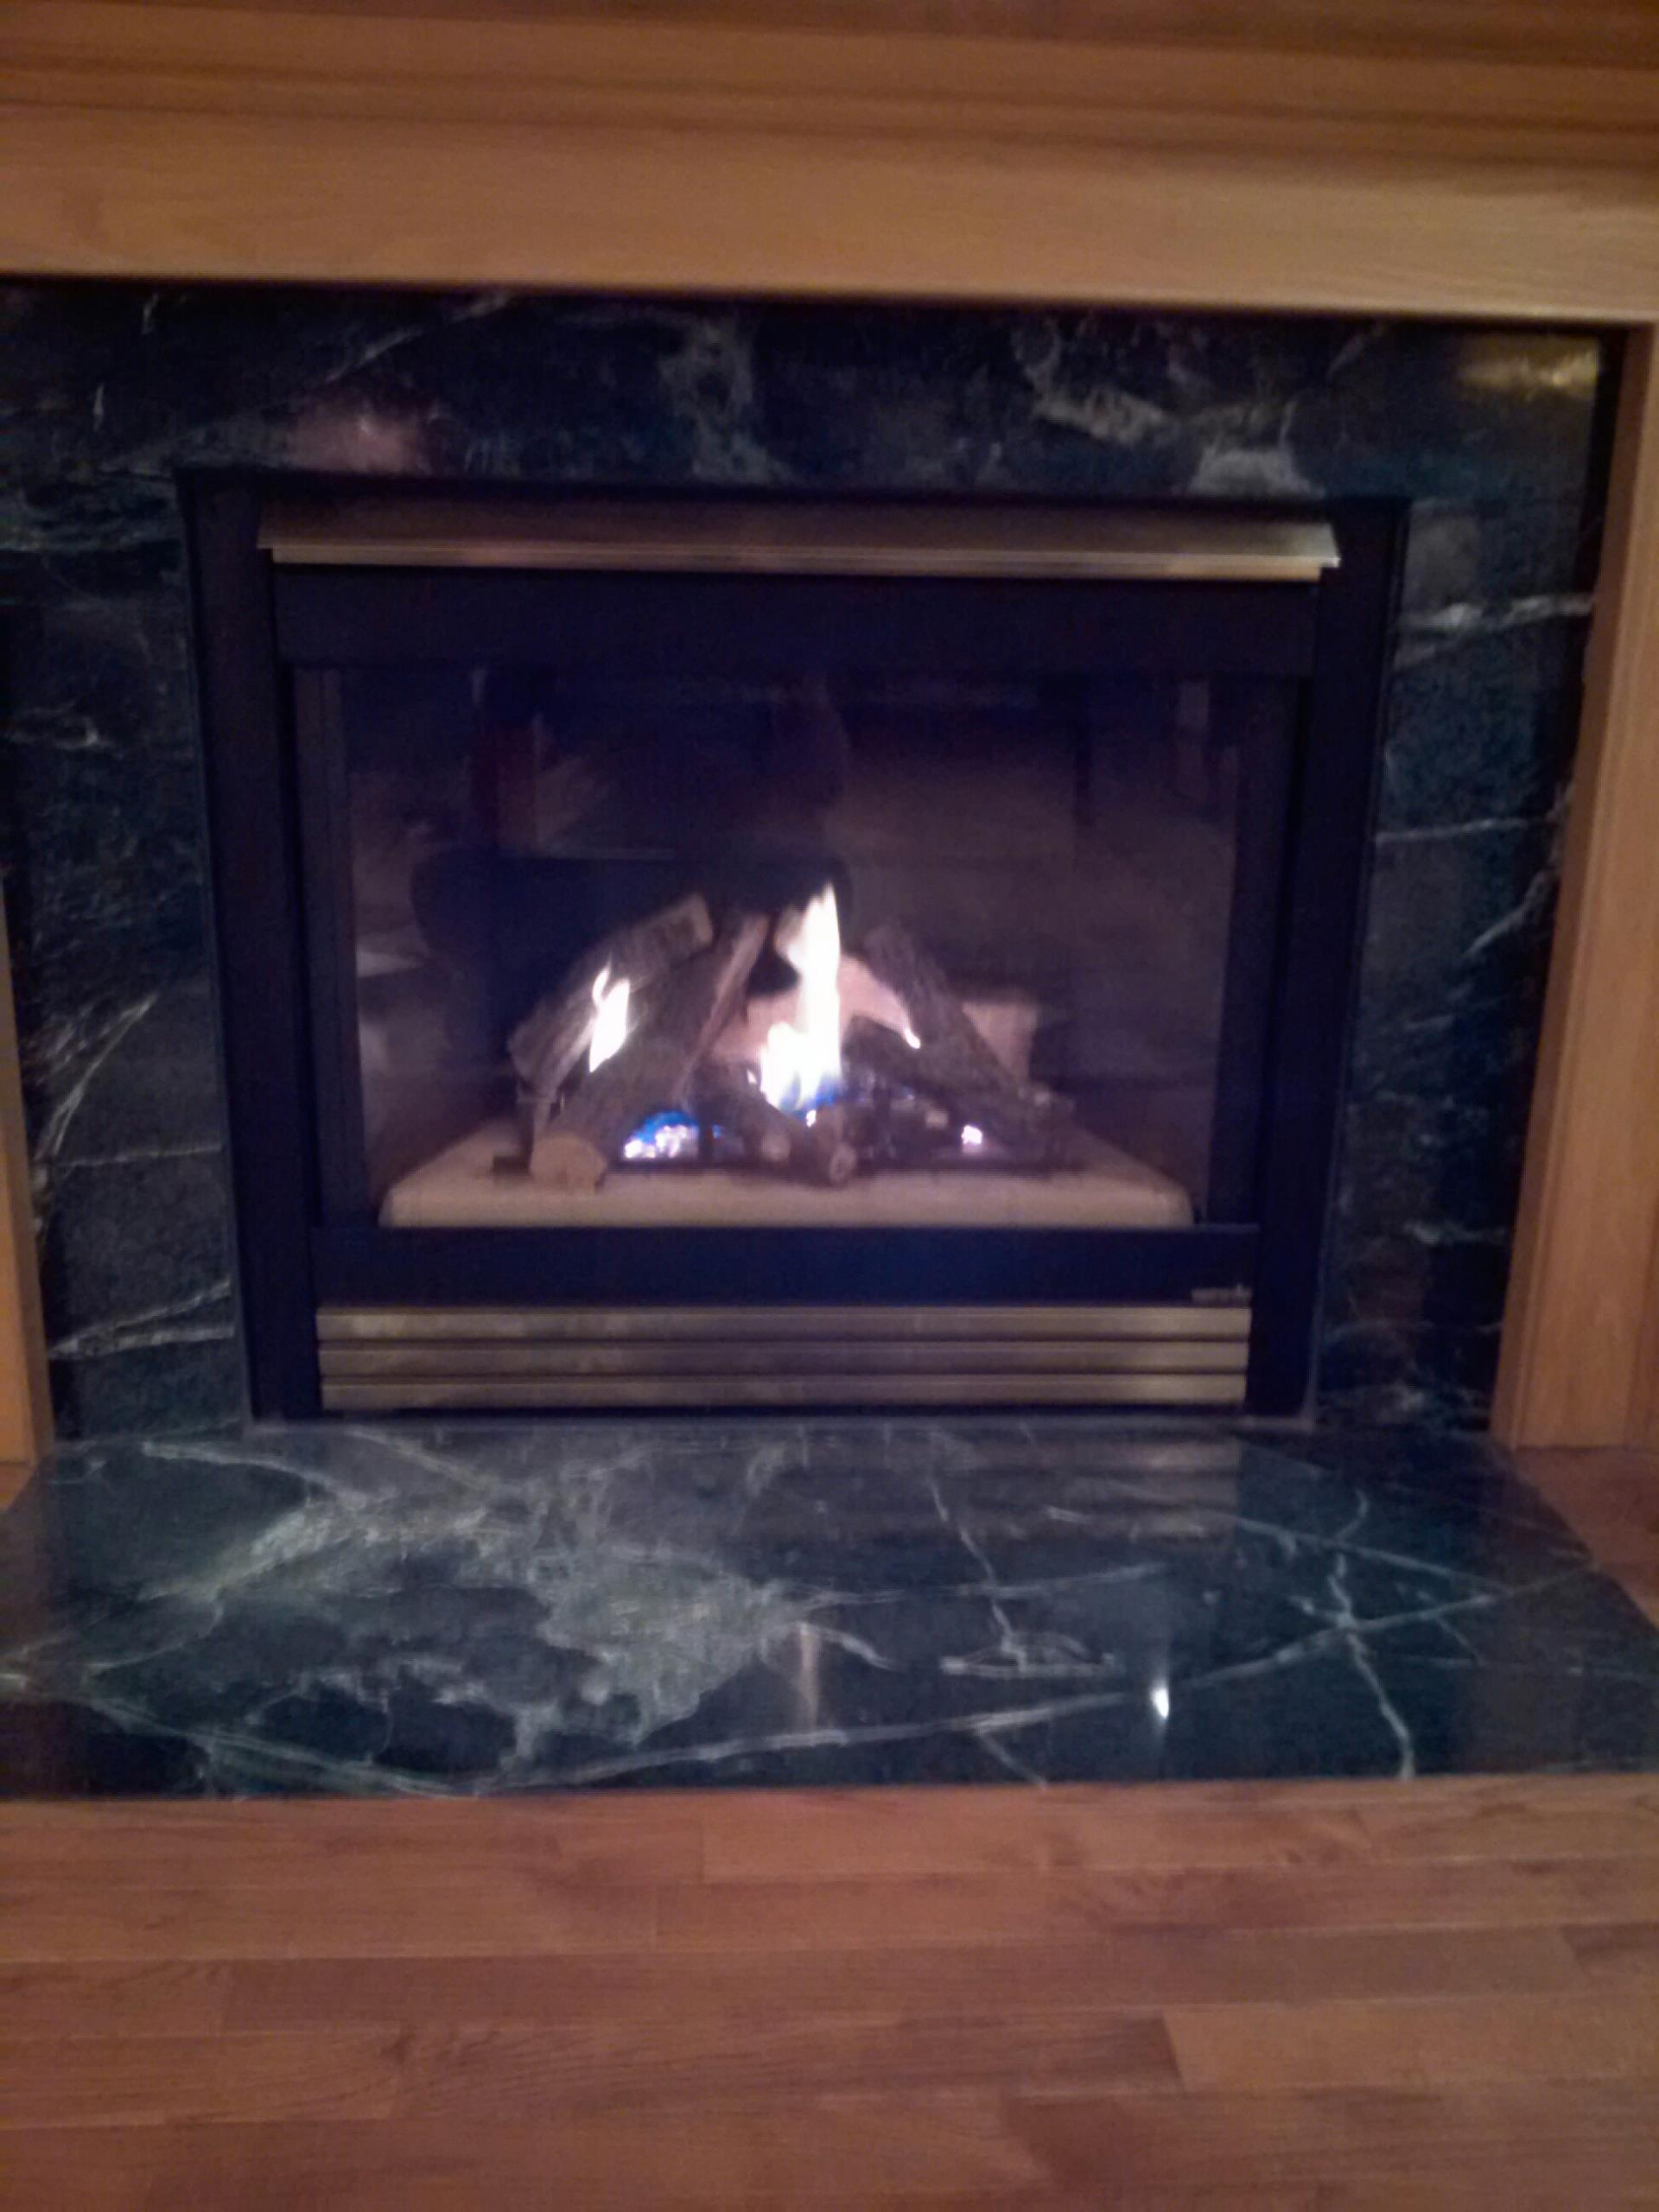 Gambrills, MD - Gambrills Maryland gas fireplace insert & gas logs installation repair service call.Fireplace service